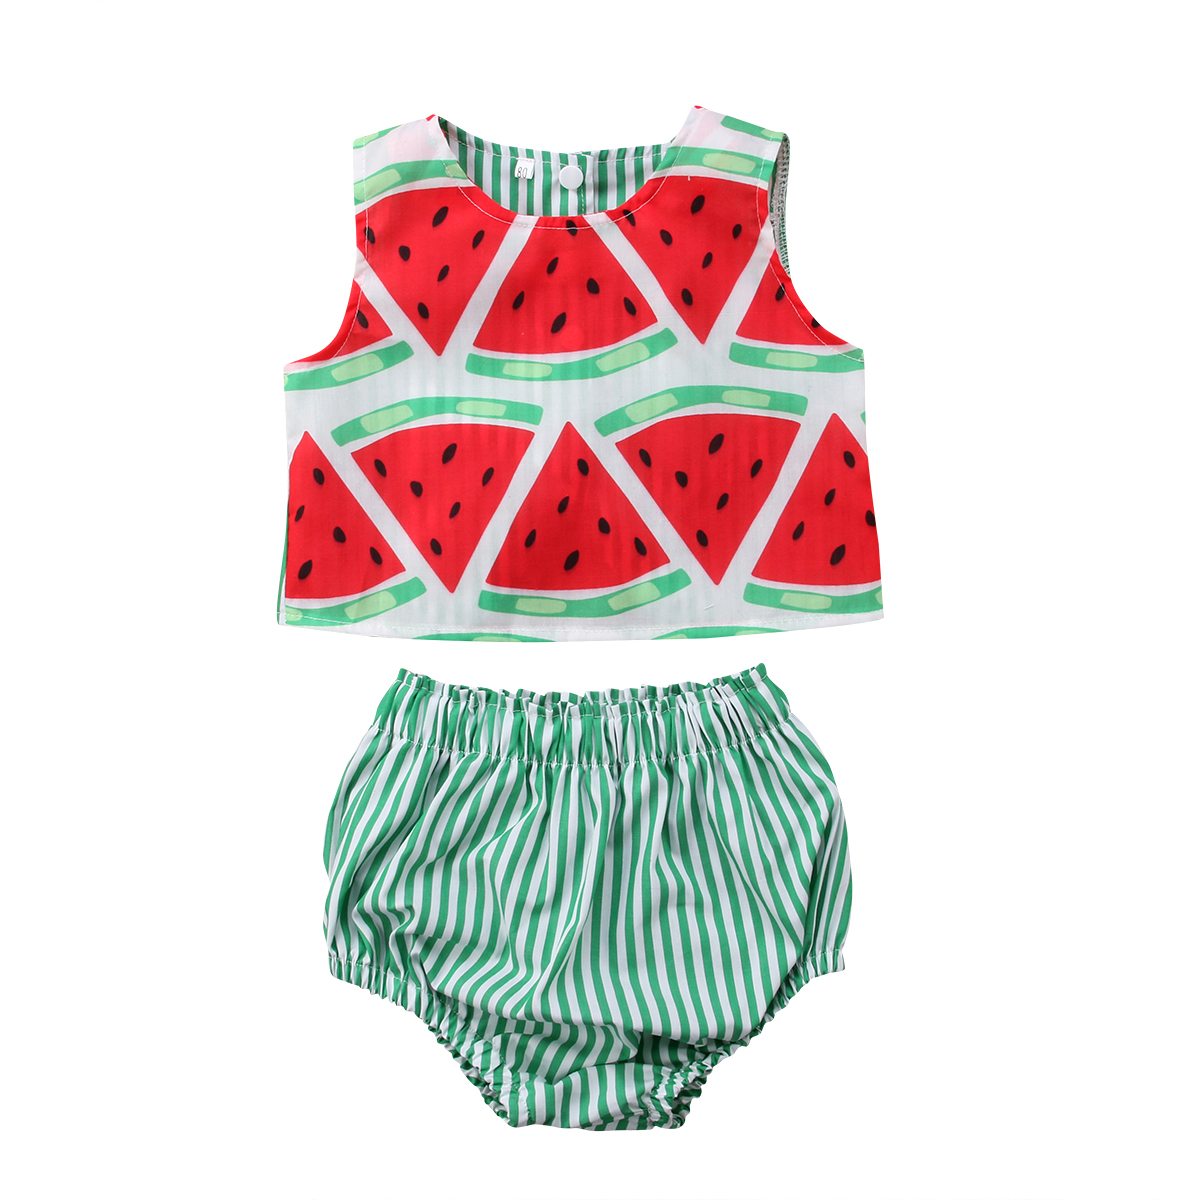 New Fashion 2PCS Toddler Kids Baby Girls Clothing Print Watermelon Crop Tops+Shorts Bottoms Summer Outfits Clothes Set